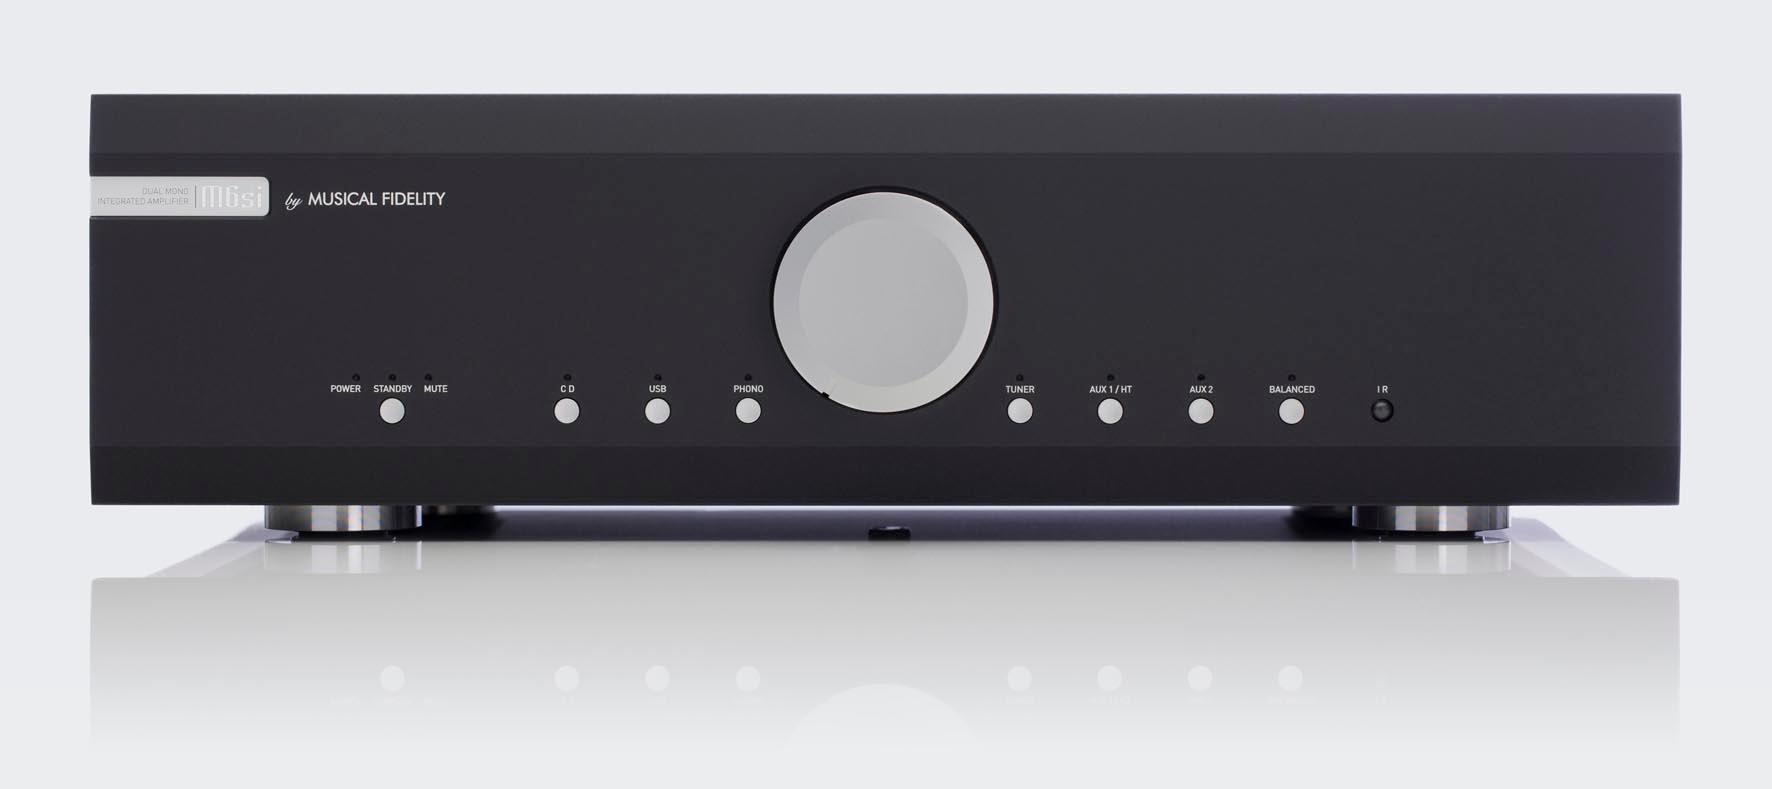 Musical Fidelity Releases M6si Amplifier